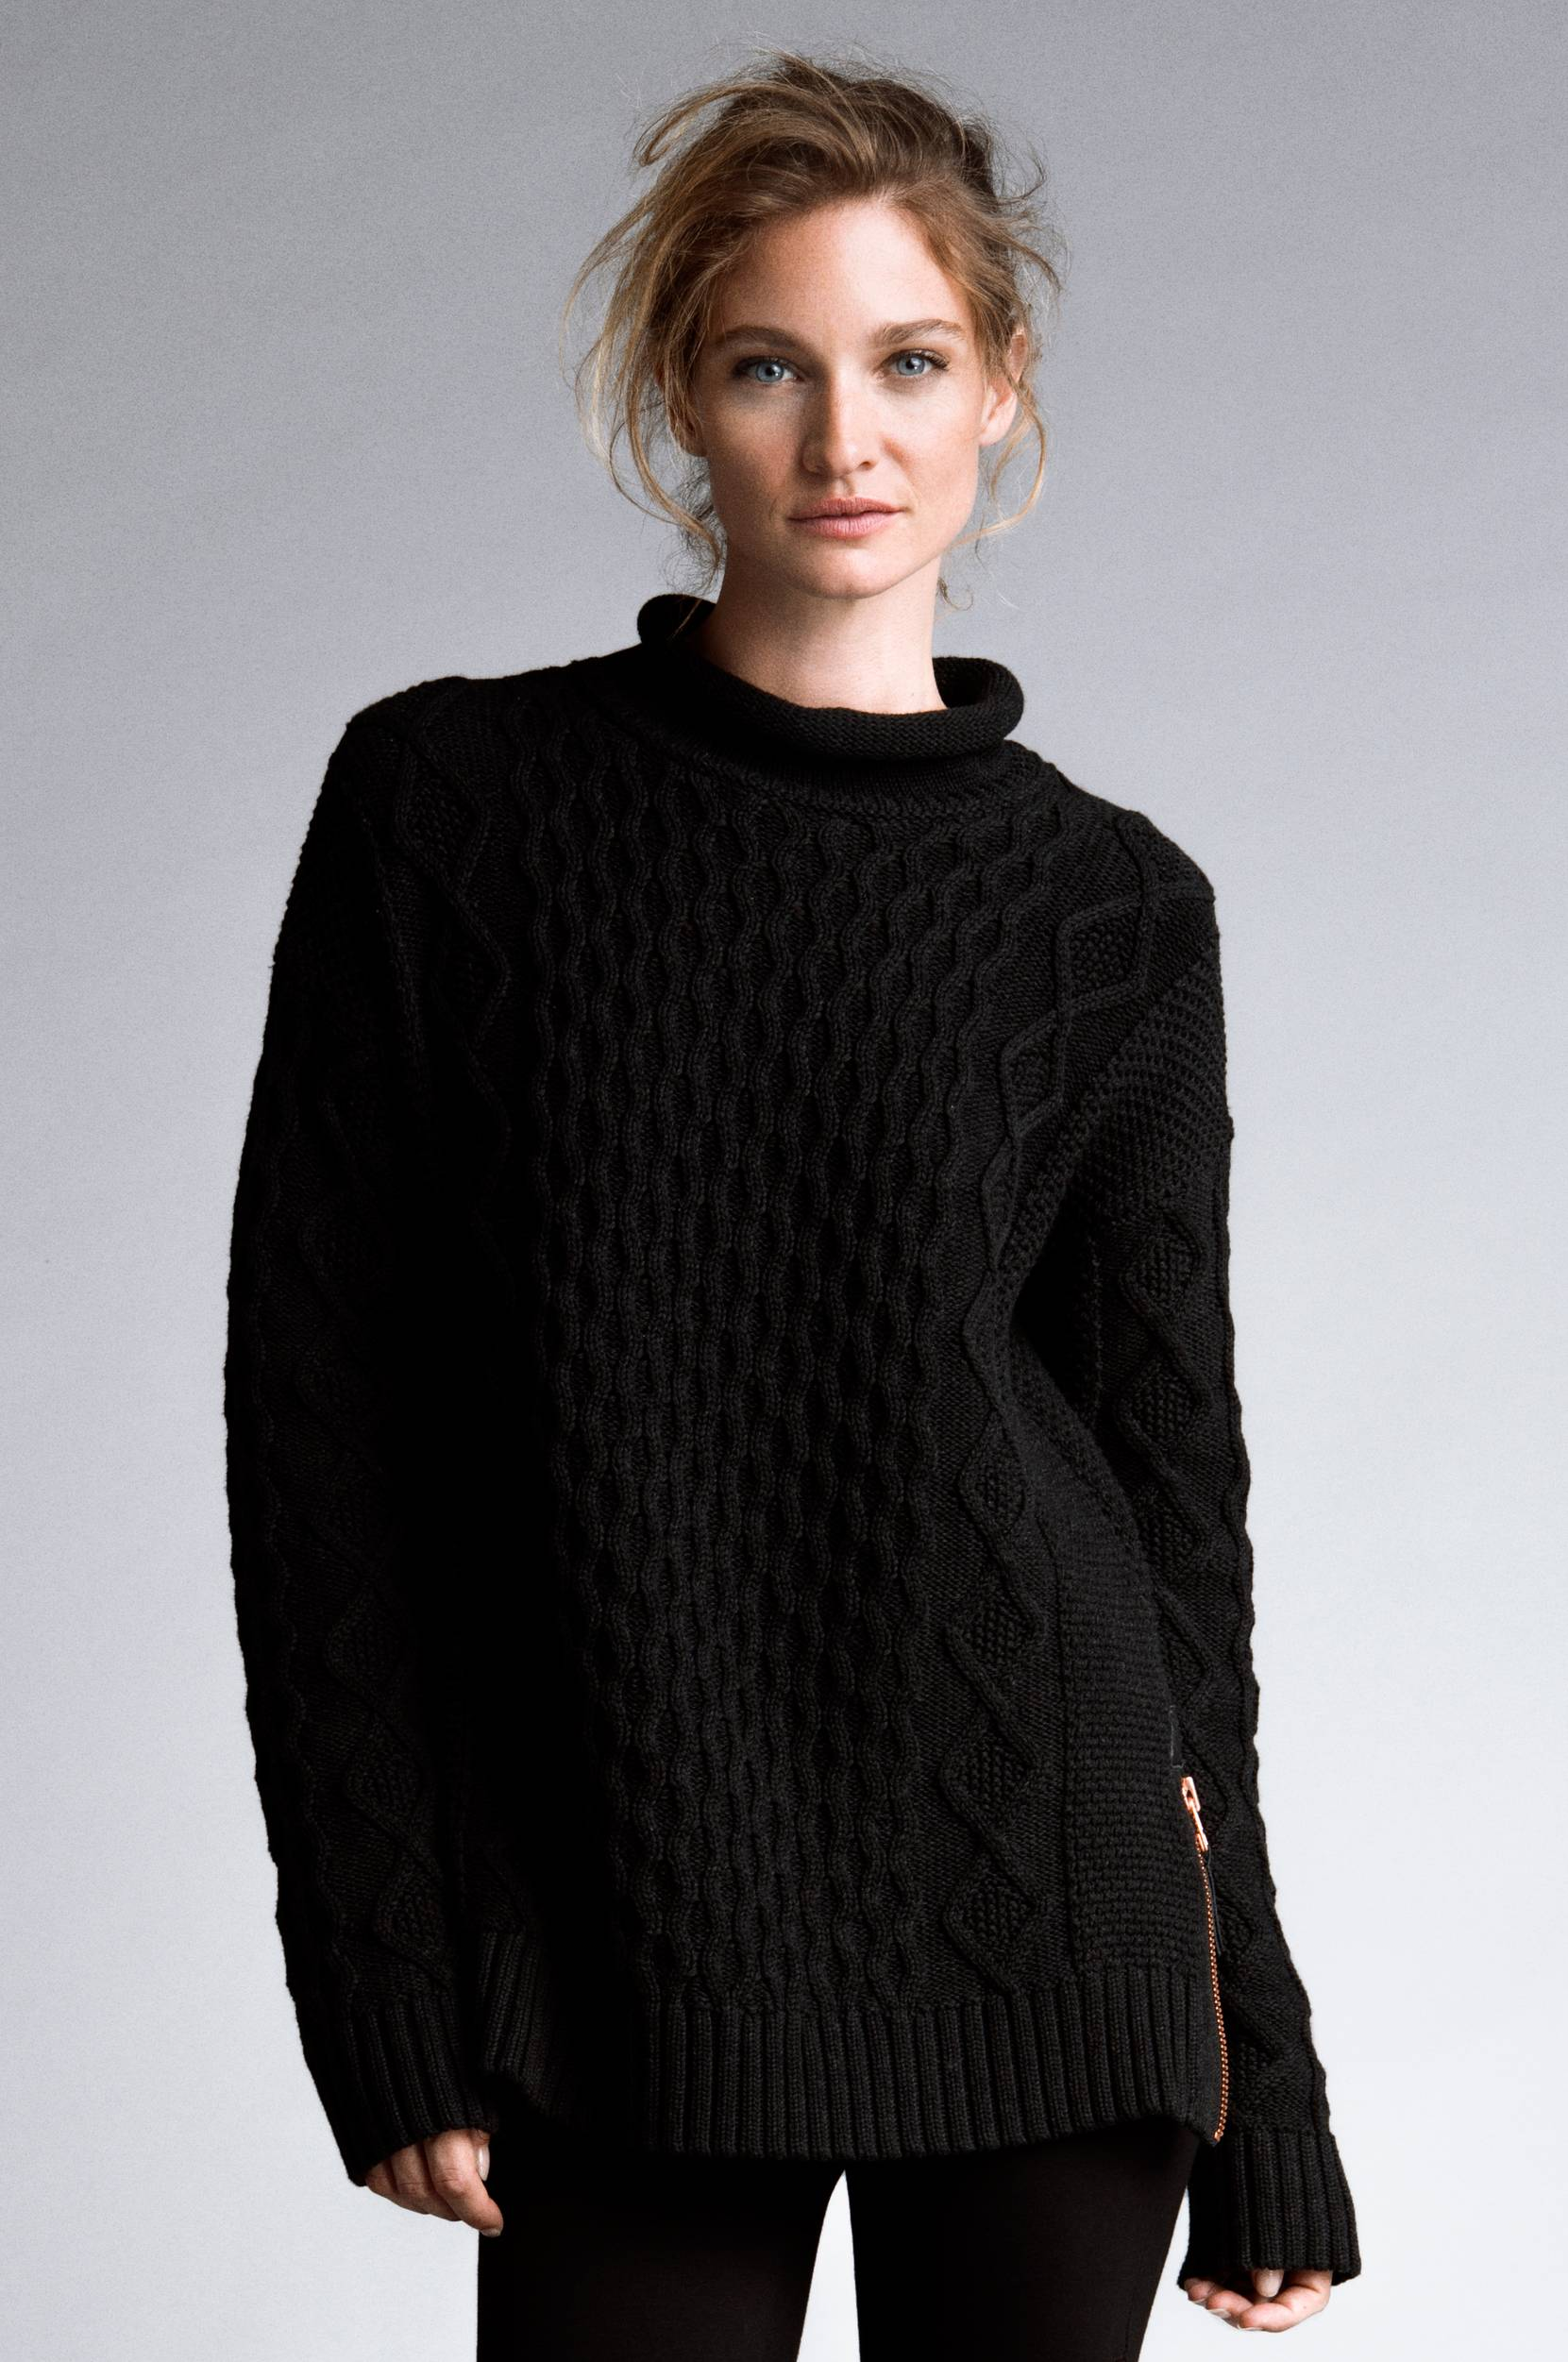 The Handknitted Sweater